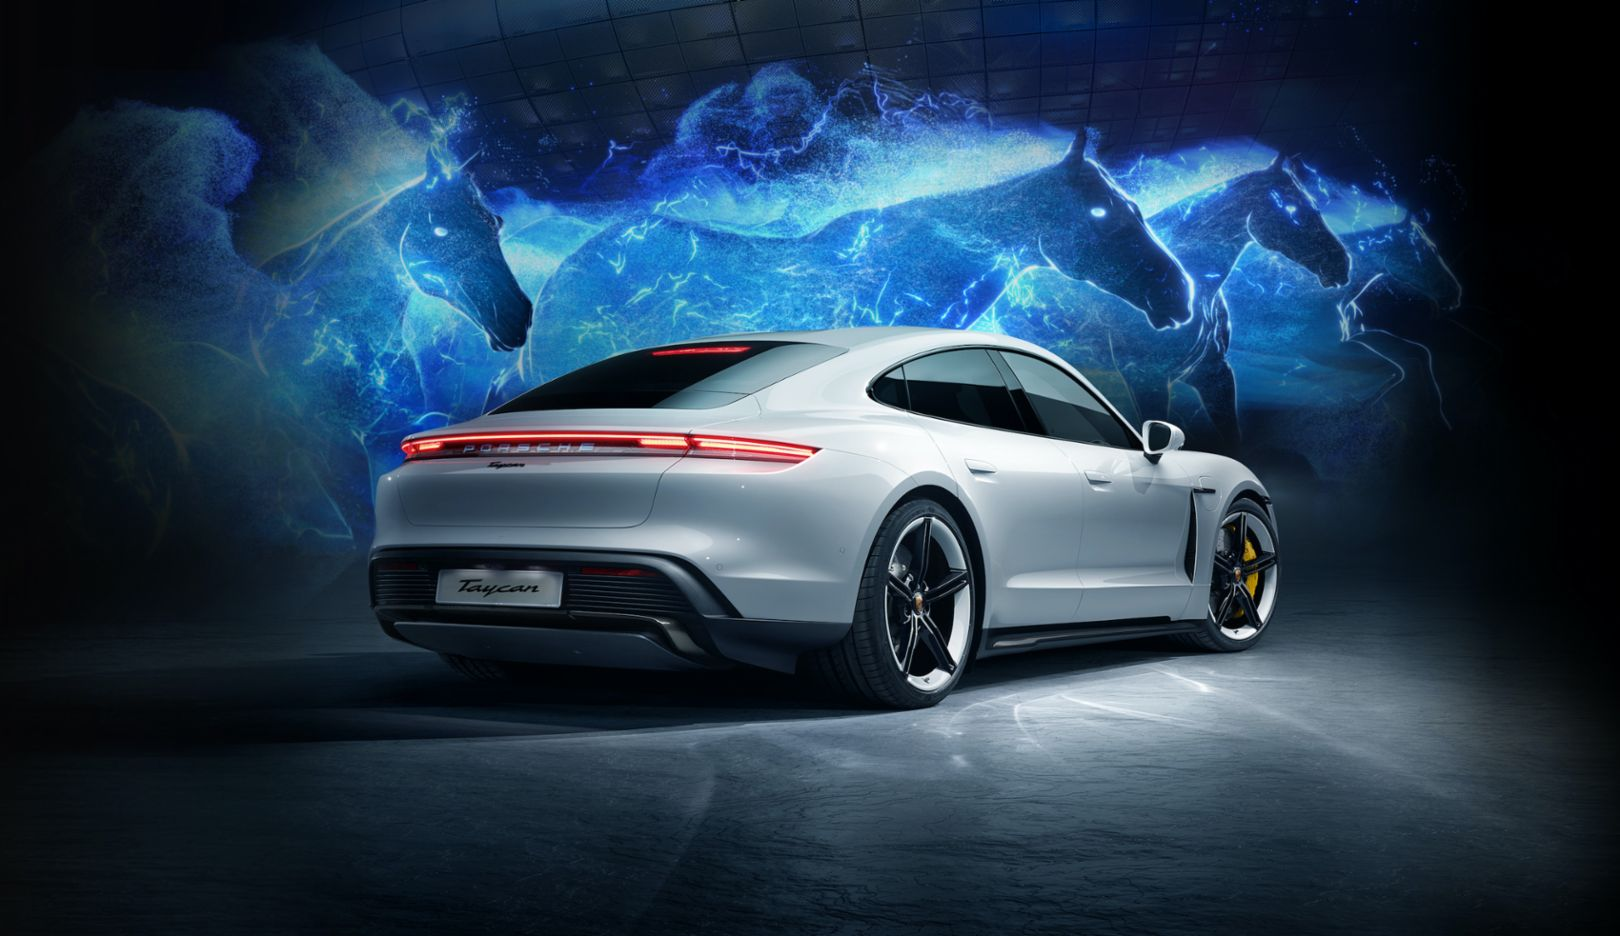 The all-electric Porsche Taycan launches in Korea with a breath-taking hologram show - Image 8